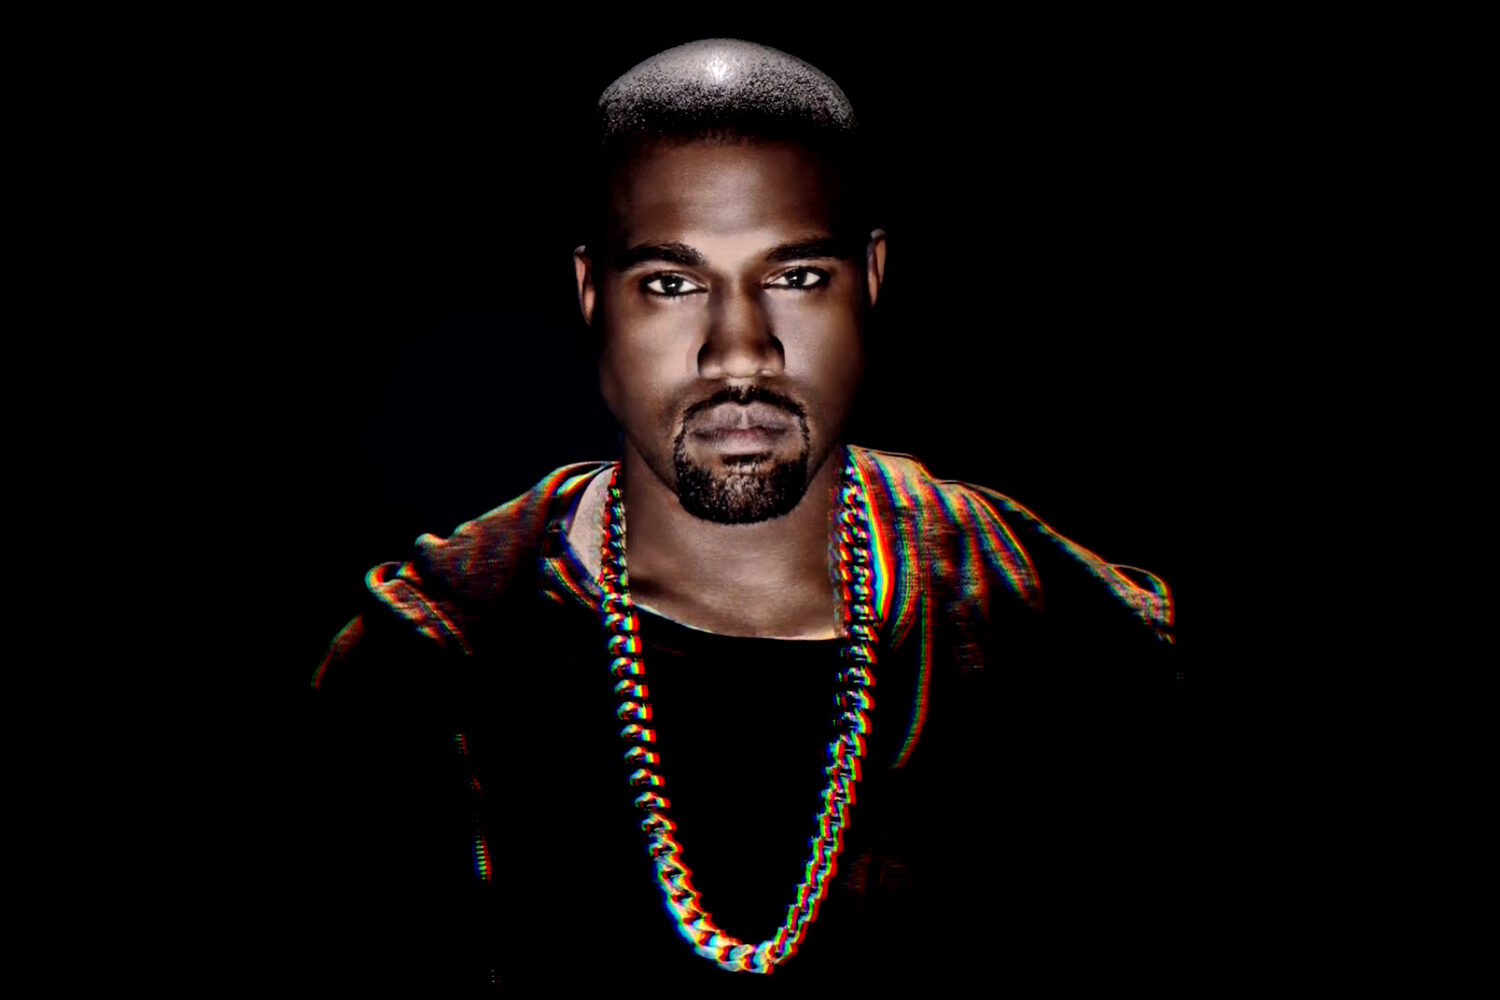 Kanye West is set to make an appearance on Jimmy Kimmel Live! this week